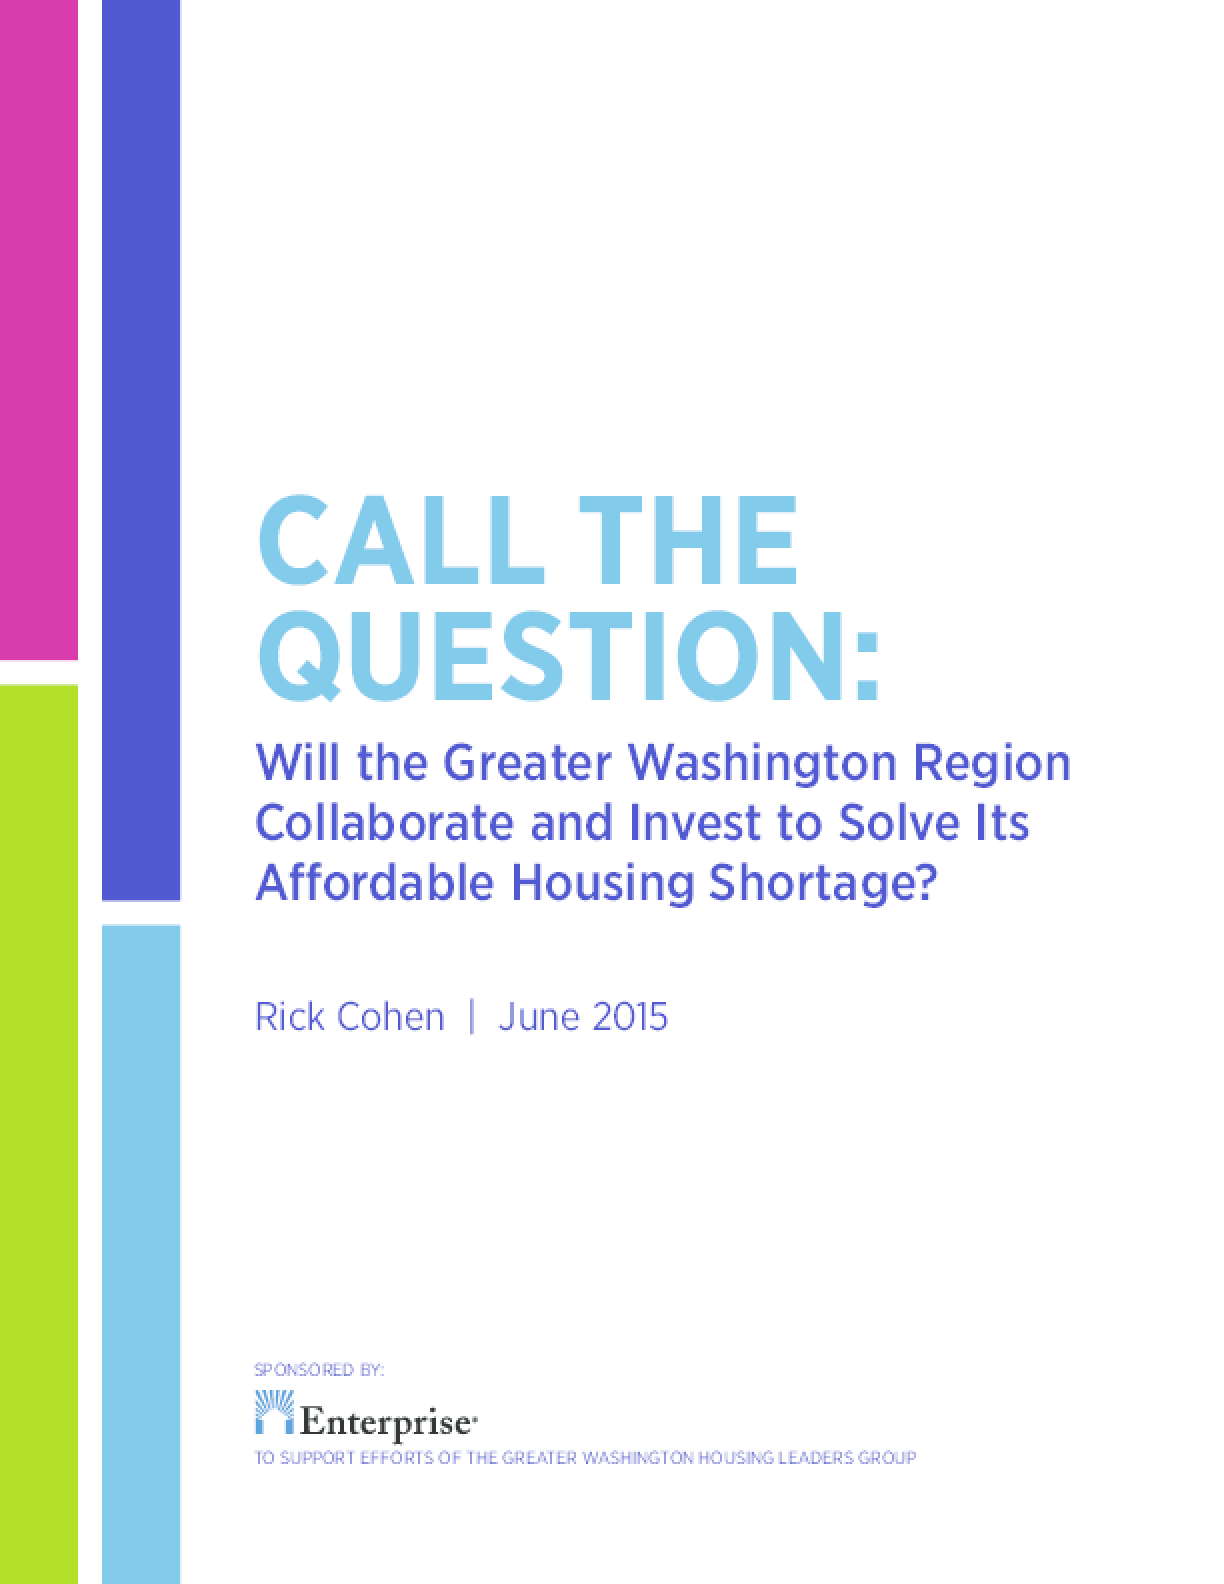 Call The Question: Will the Greater Washington Region Collaborate and Invest to Solve Its Affordable Housing Shortage?